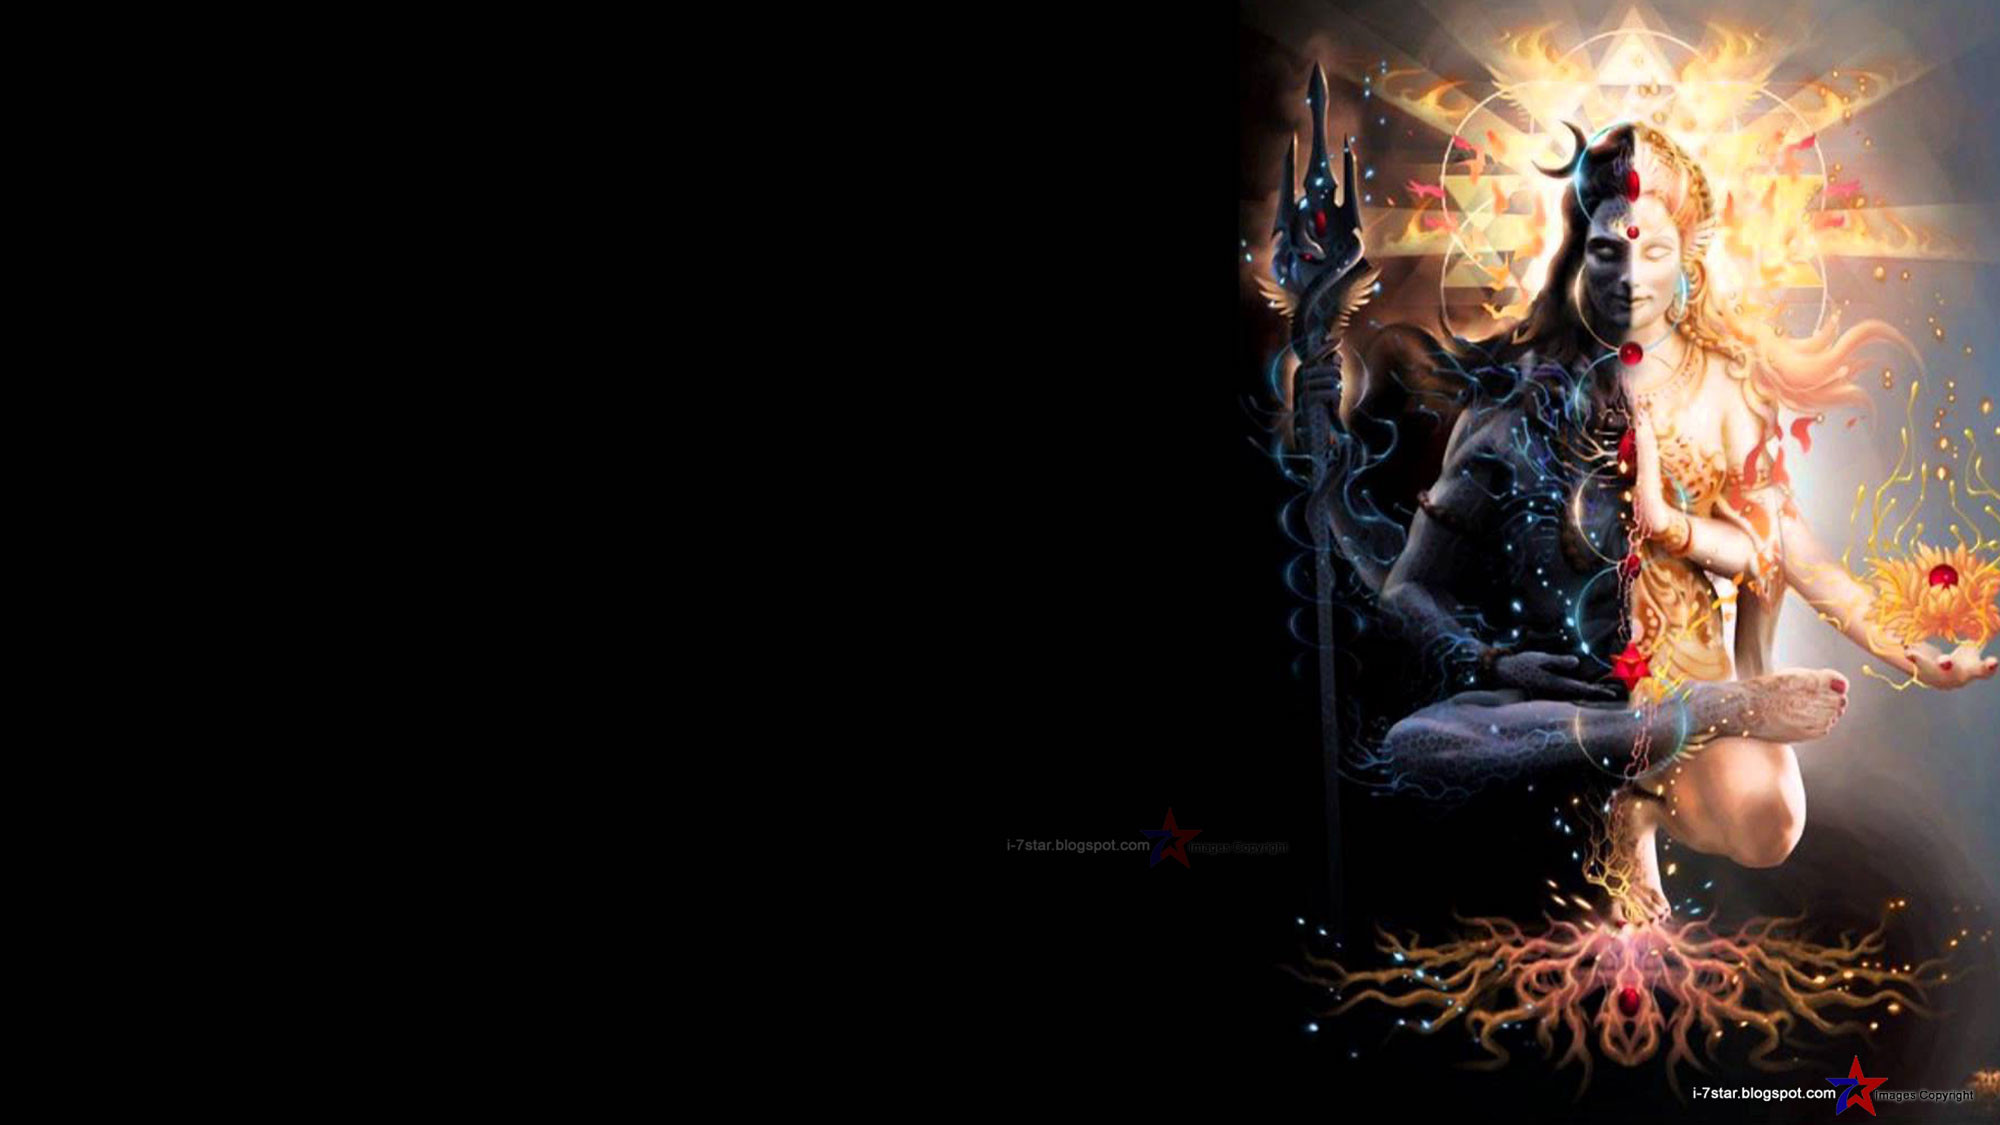 Lord Shiva Creative Hd Wallpapers For Free Download Lord: Lord Shiva Wallpapers (53+ Pictures